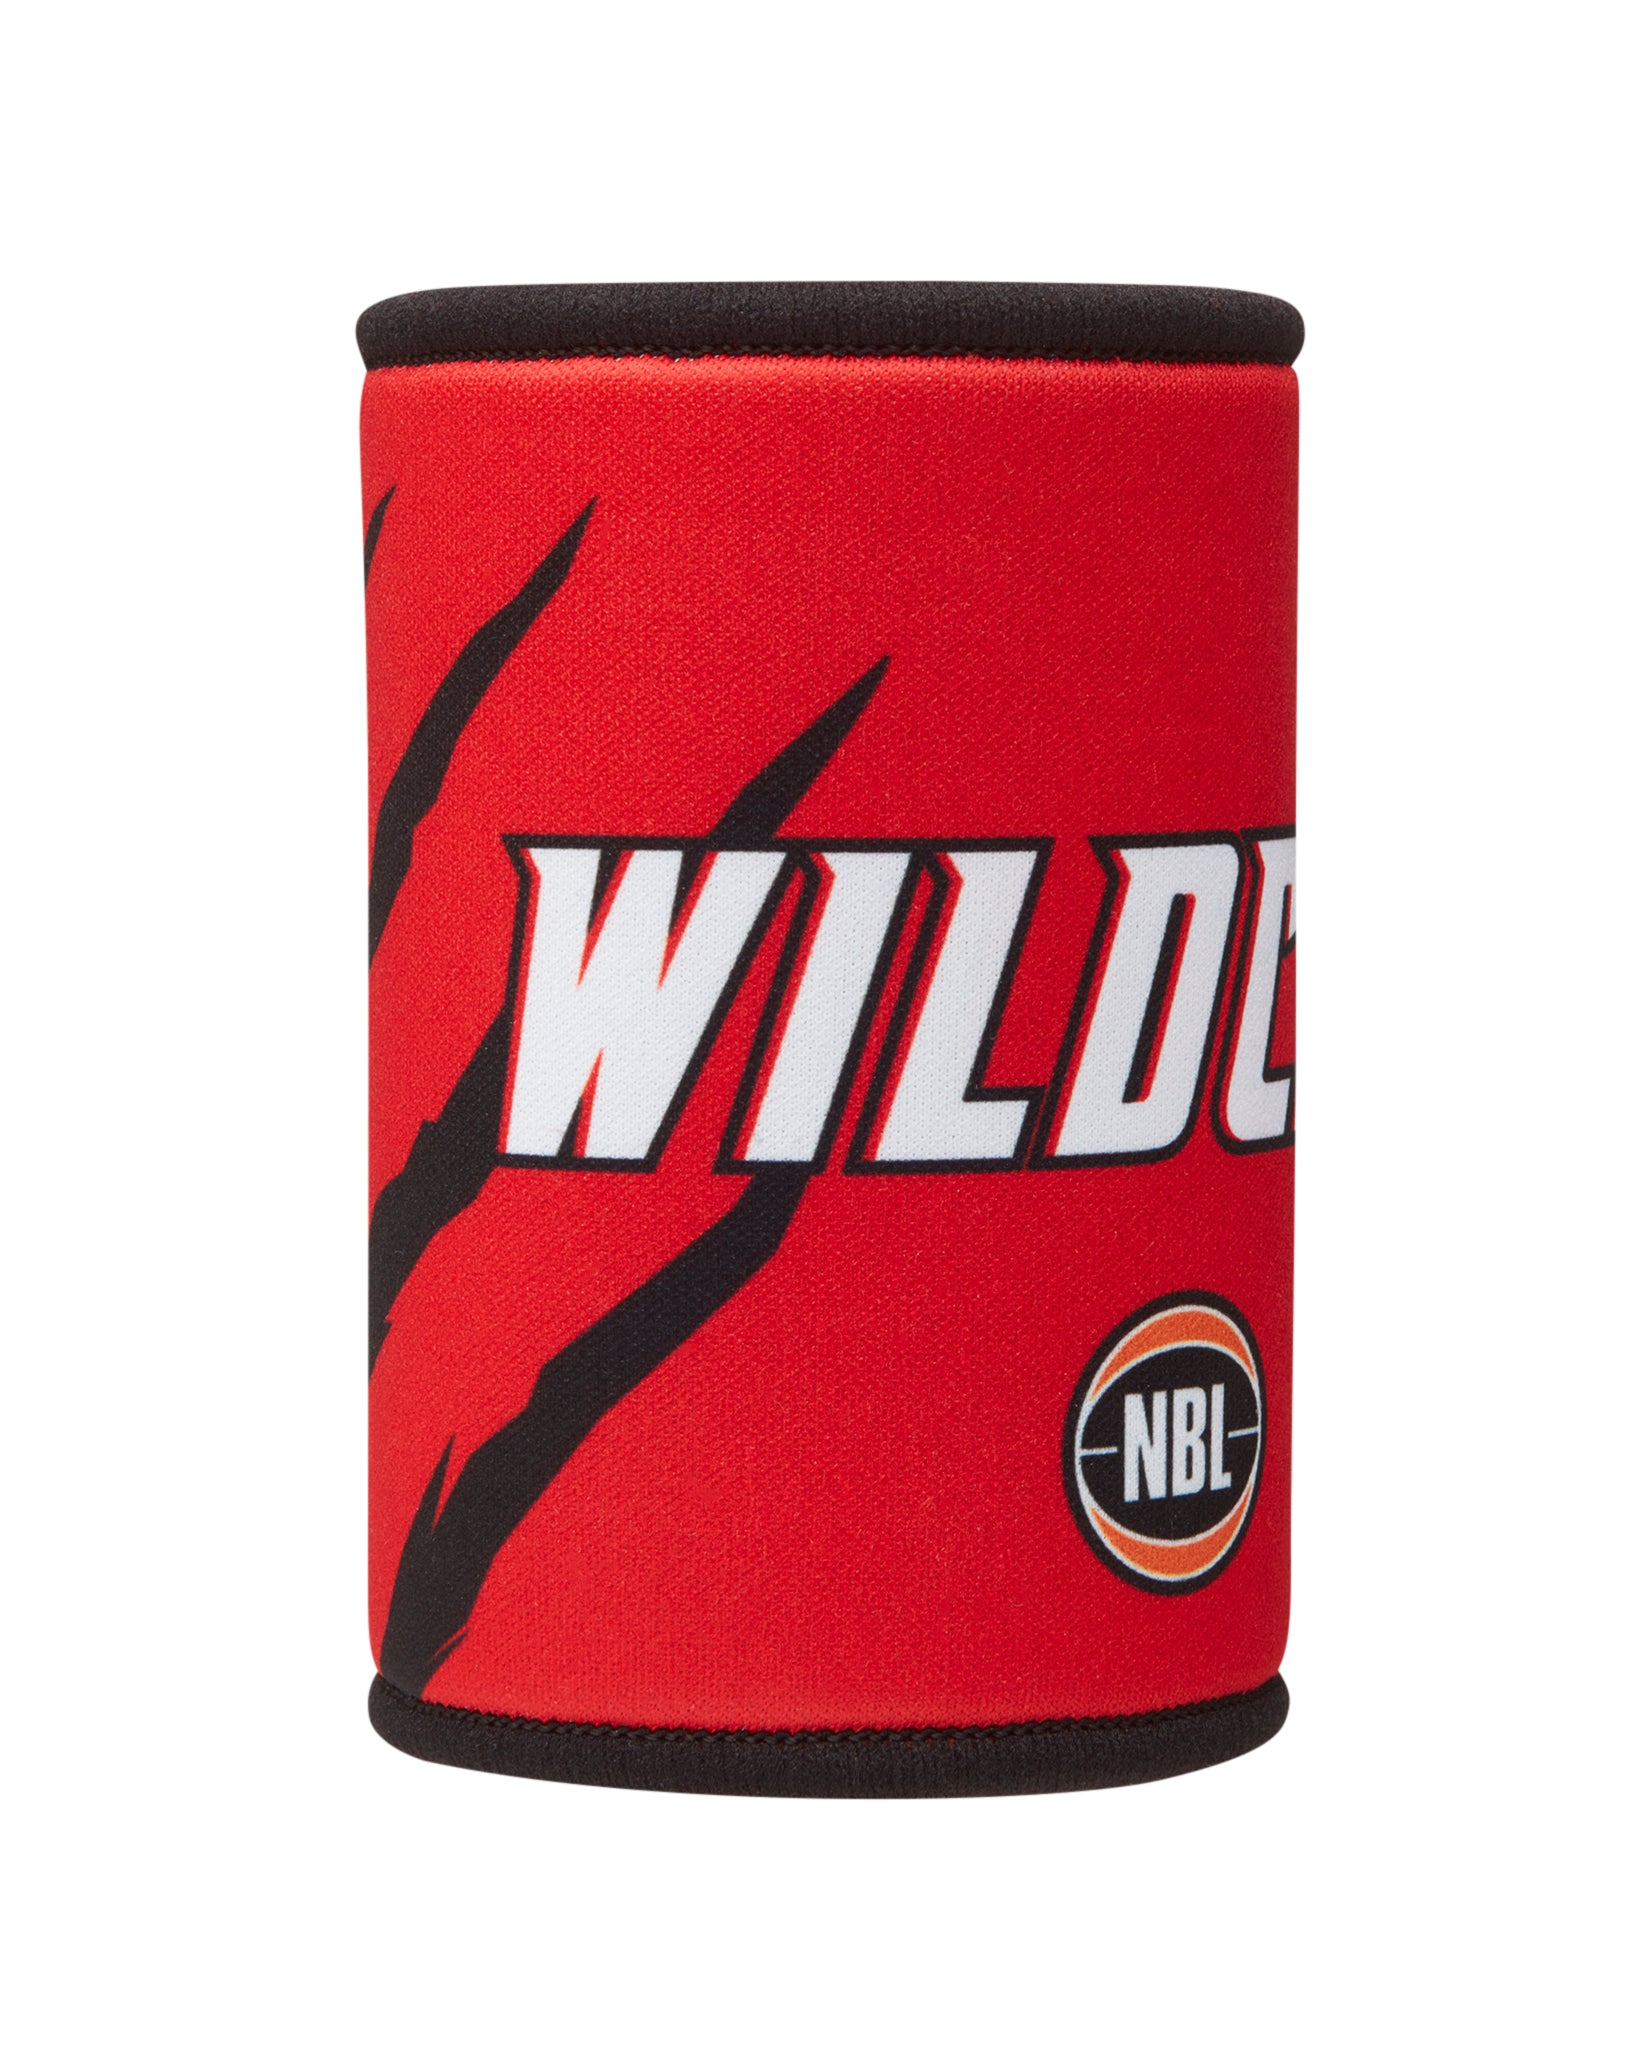 Perth Wildcats 19/20 Official NBL Can Cooler